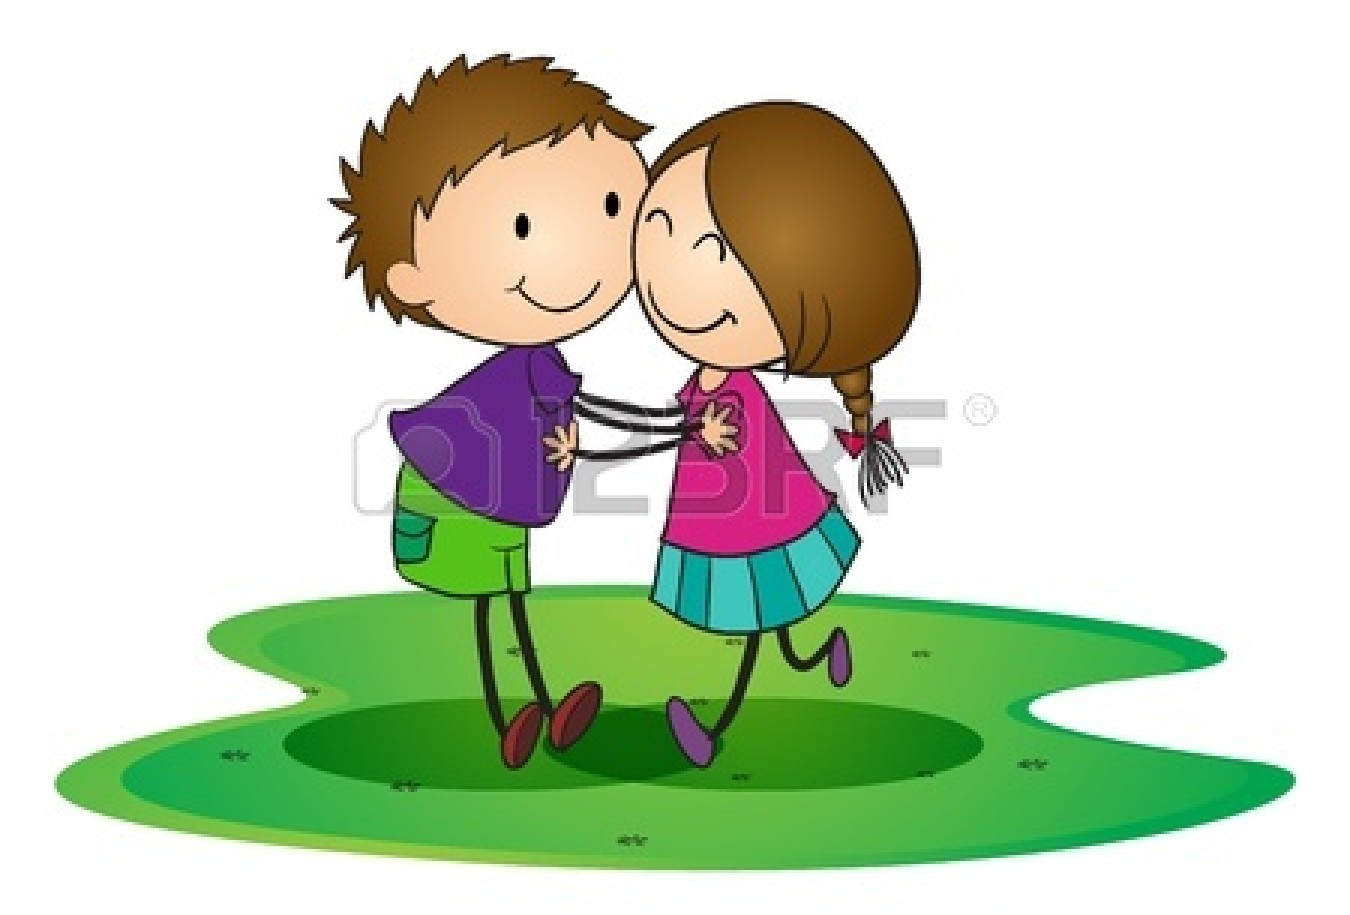 clip art friendship hugs clipart clipart suggest hugs clip art animated hugs clip art animated